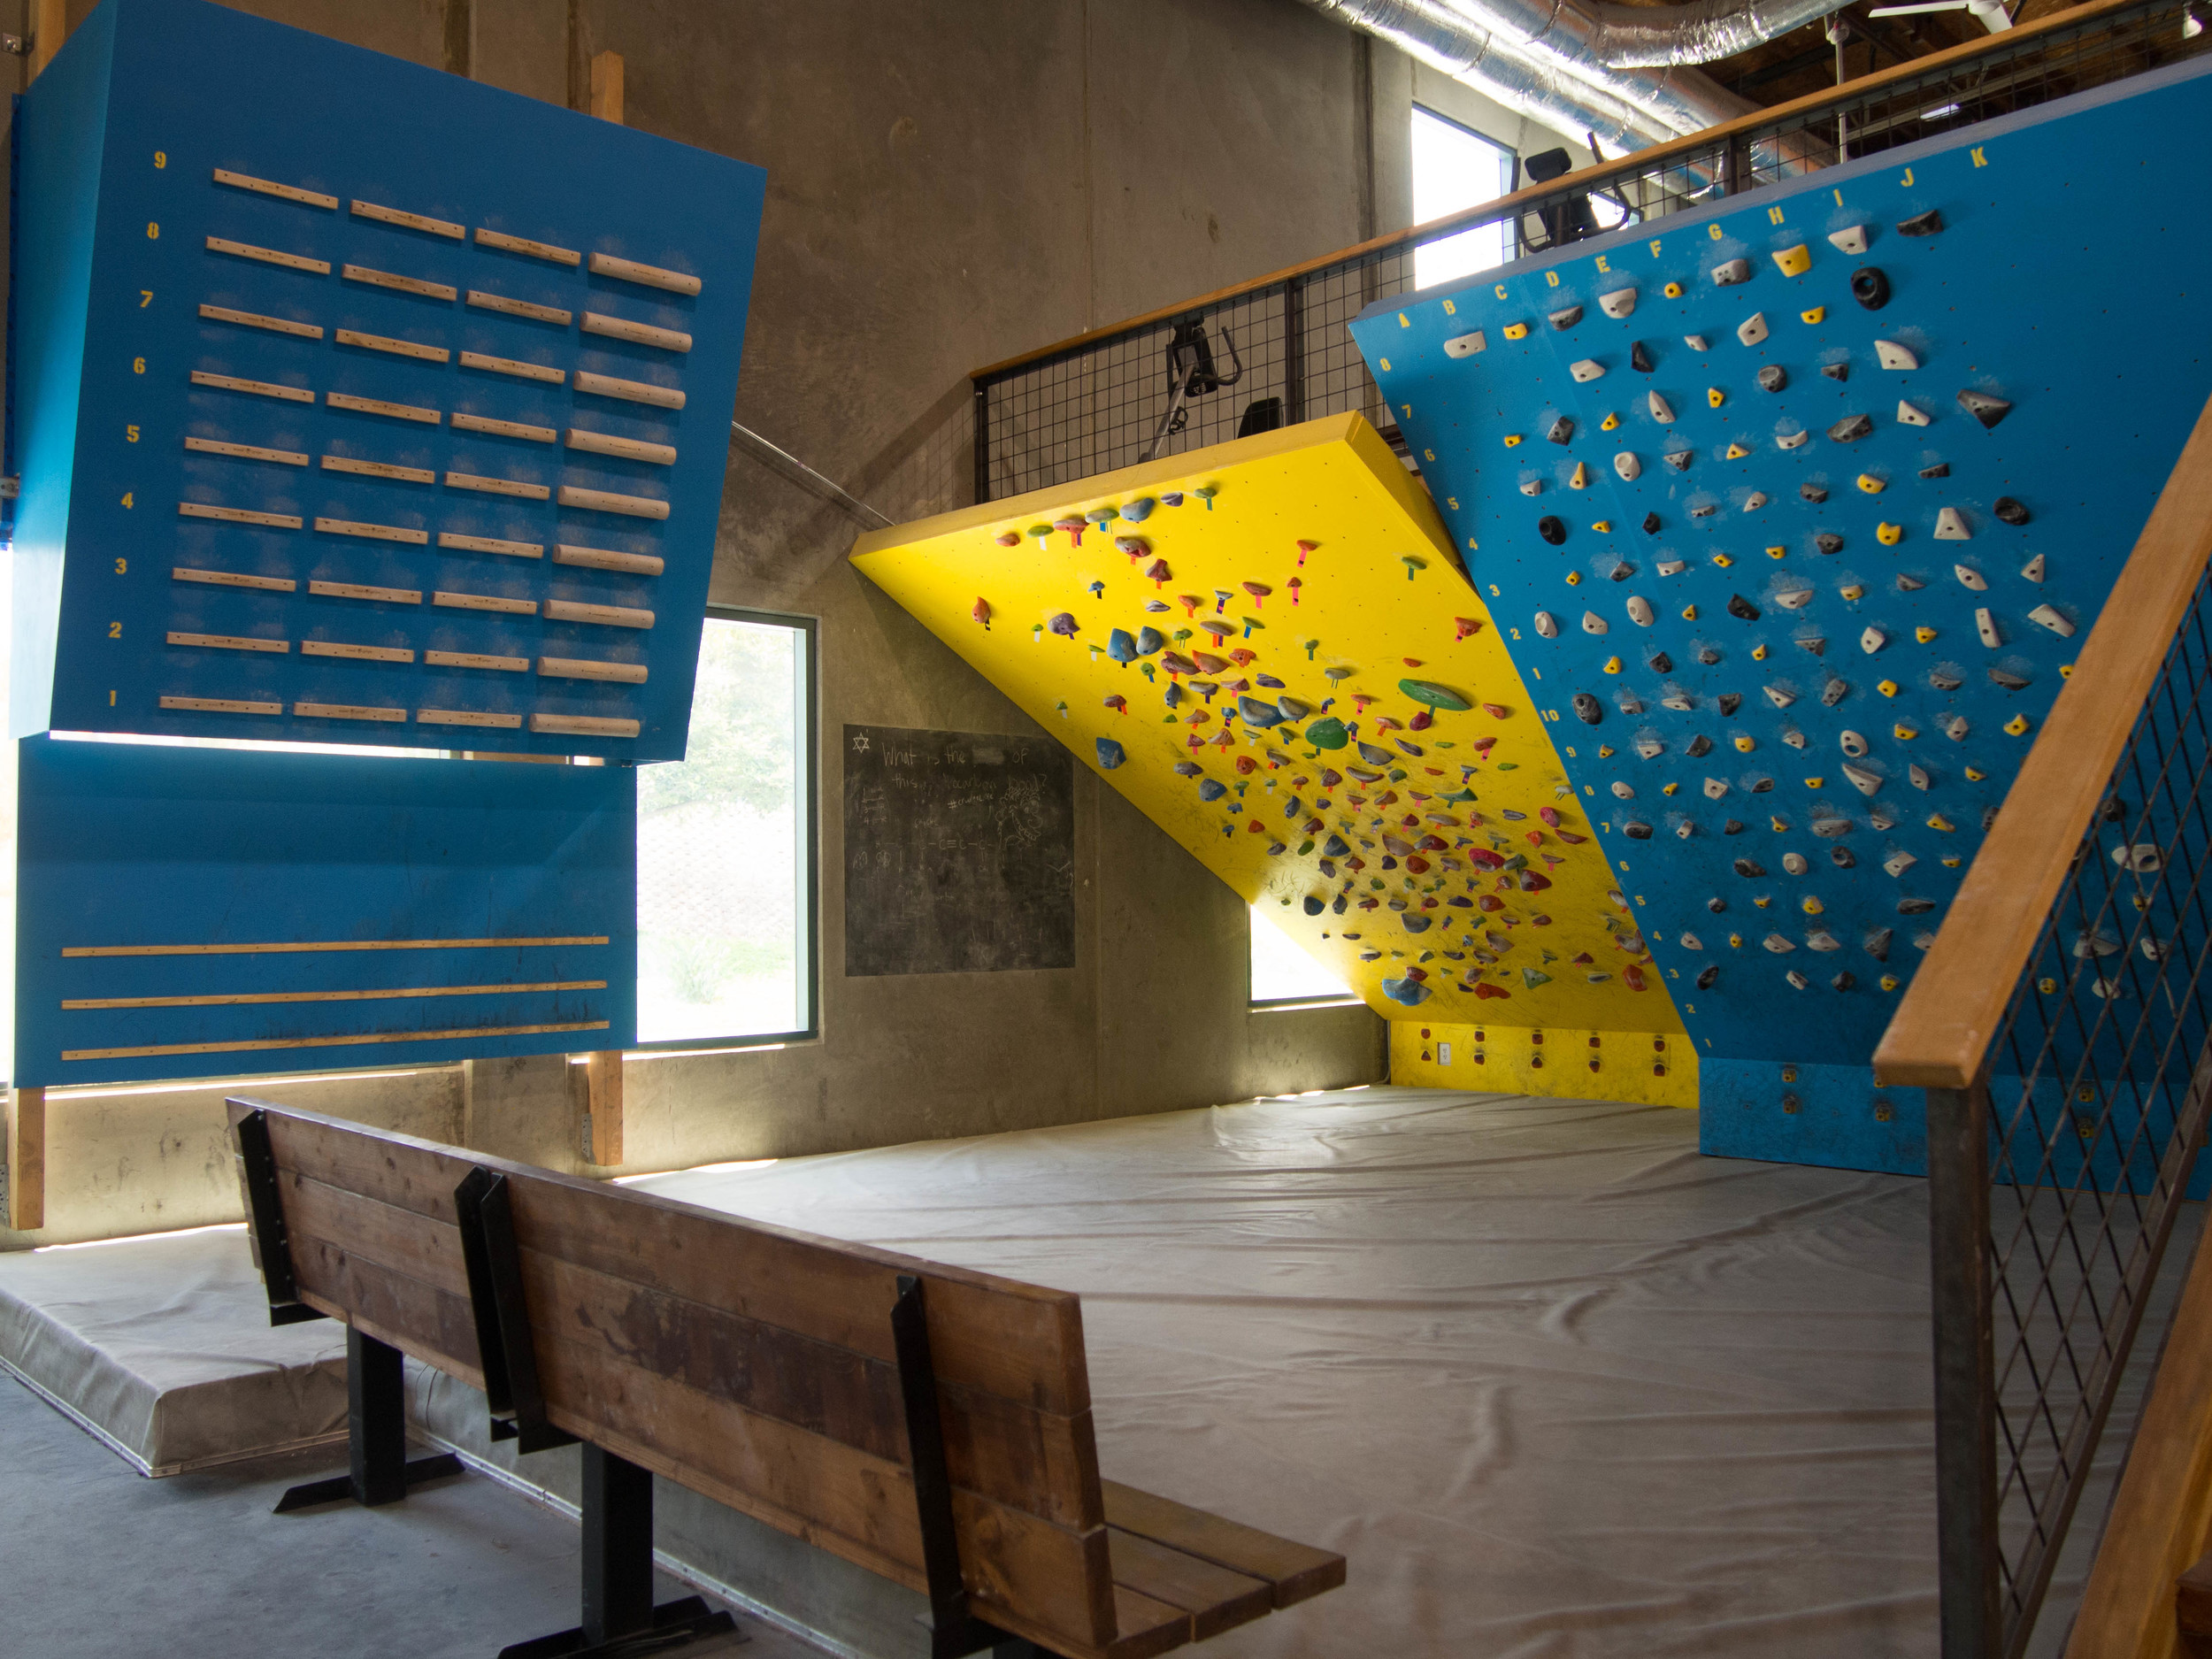 Bouldering Training – The Wall Climbing Gym